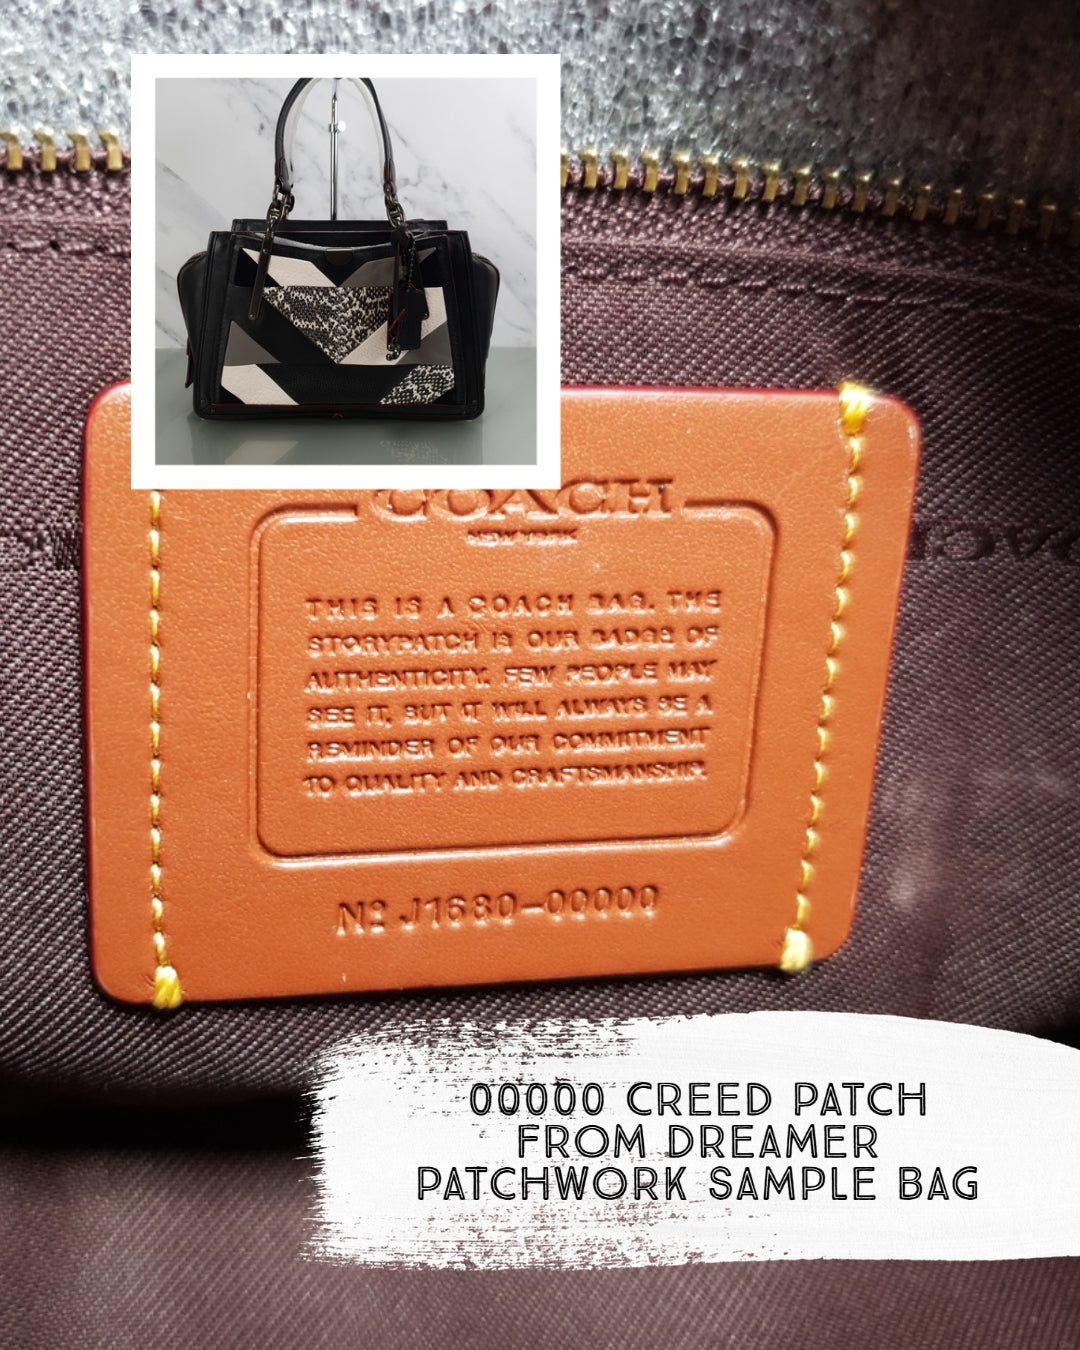 Coach sample bag dreamer snakeskin patchwork 00000 style number creed patch